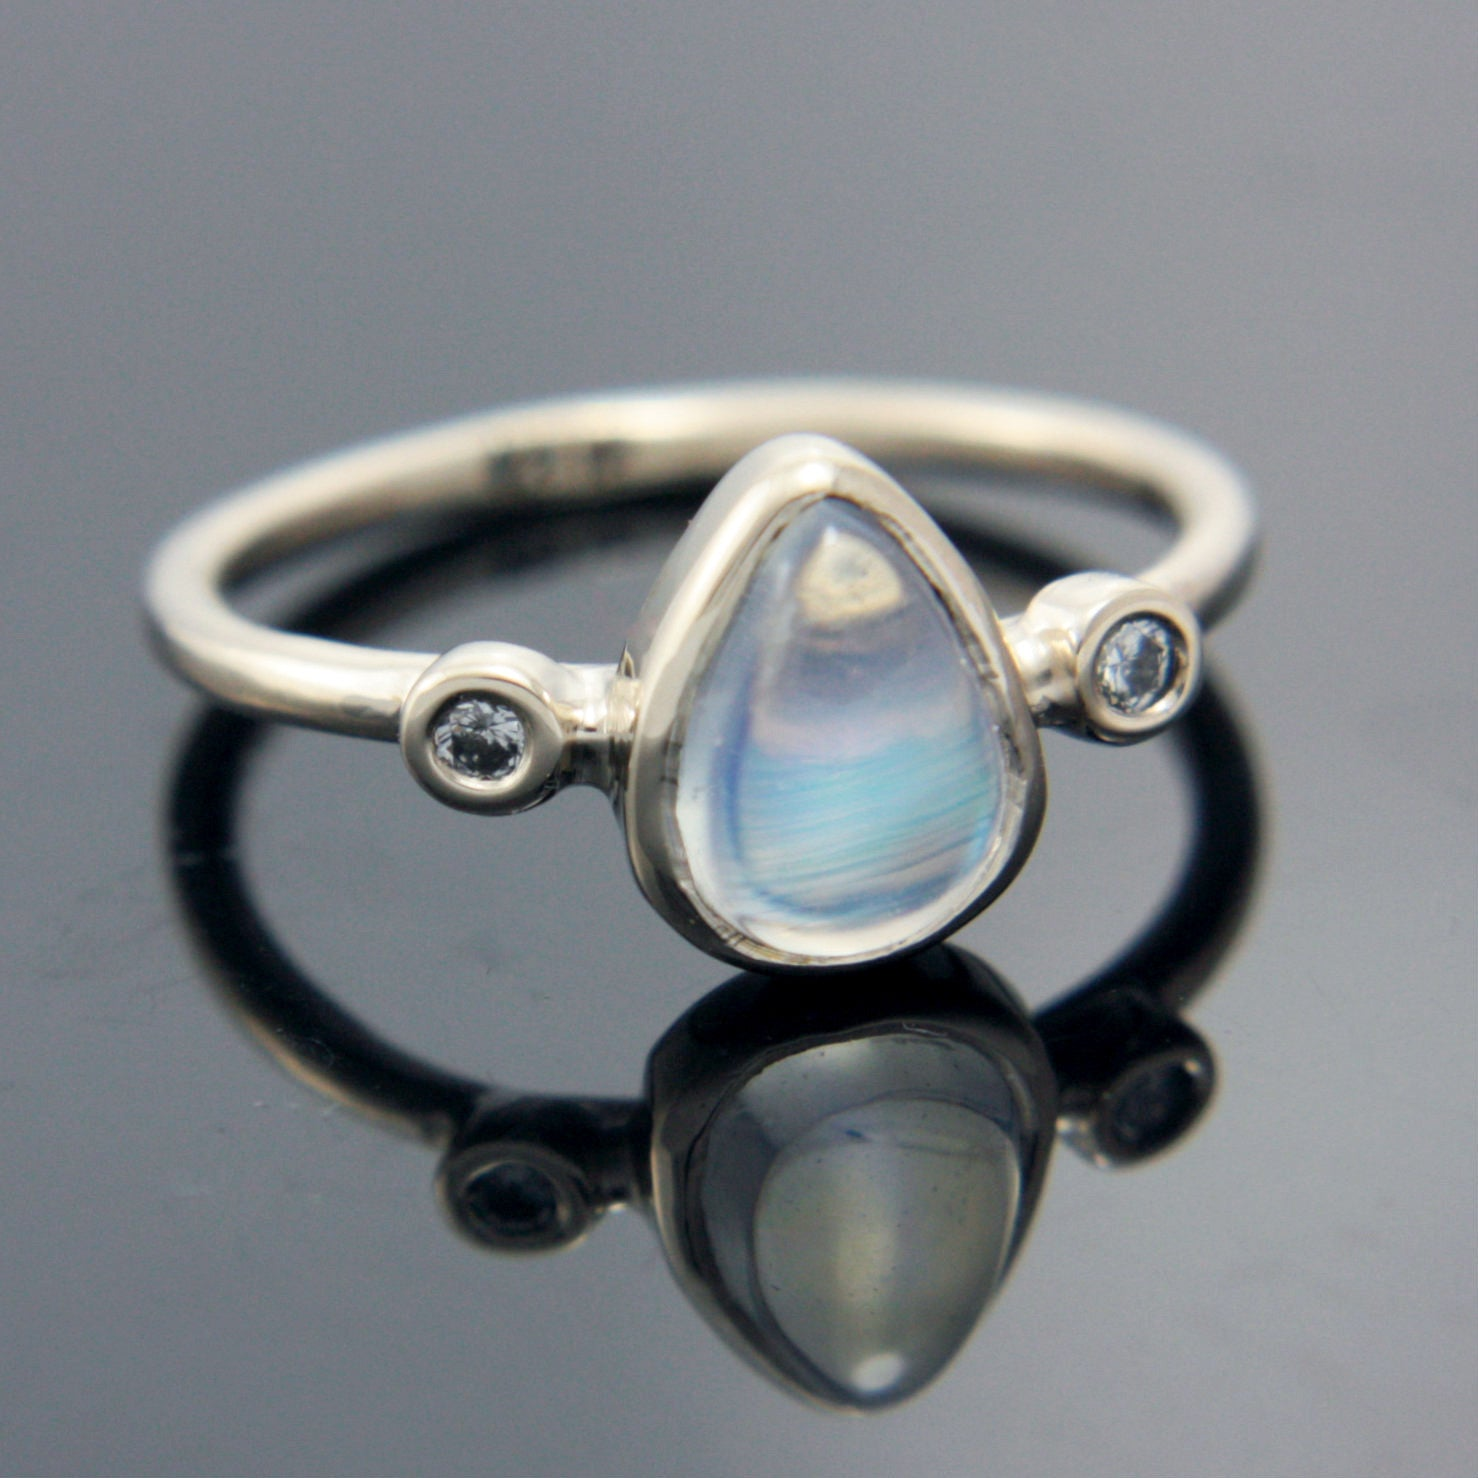 Pear Moonstone and Diamond Ring 14k White Gold - Manari Design